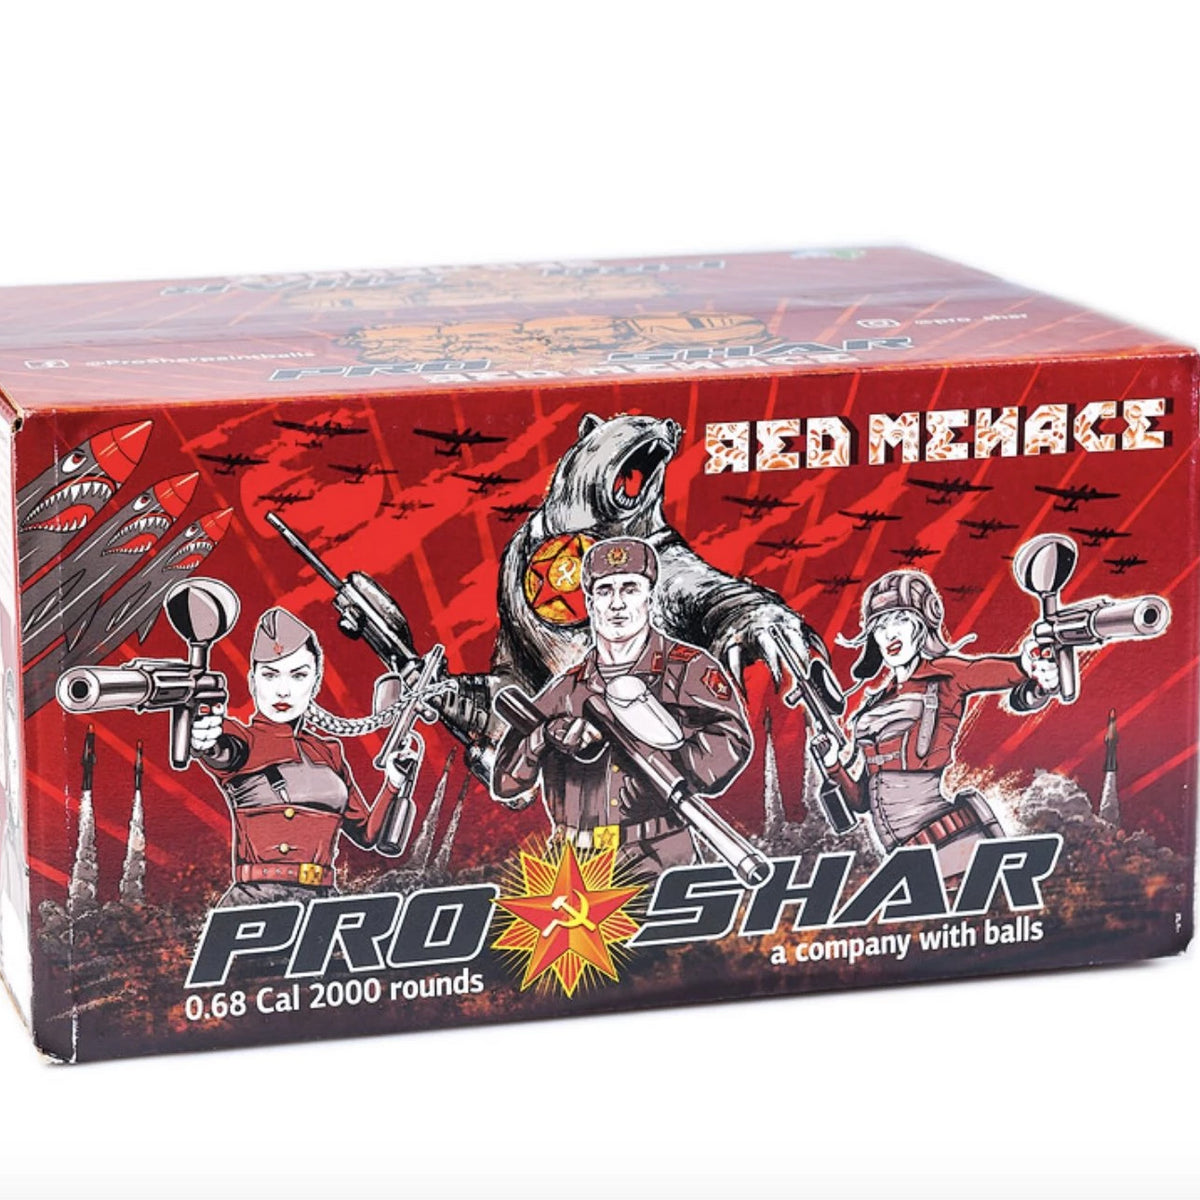 PROSHAR .68 Cal Red Menace Paintballs